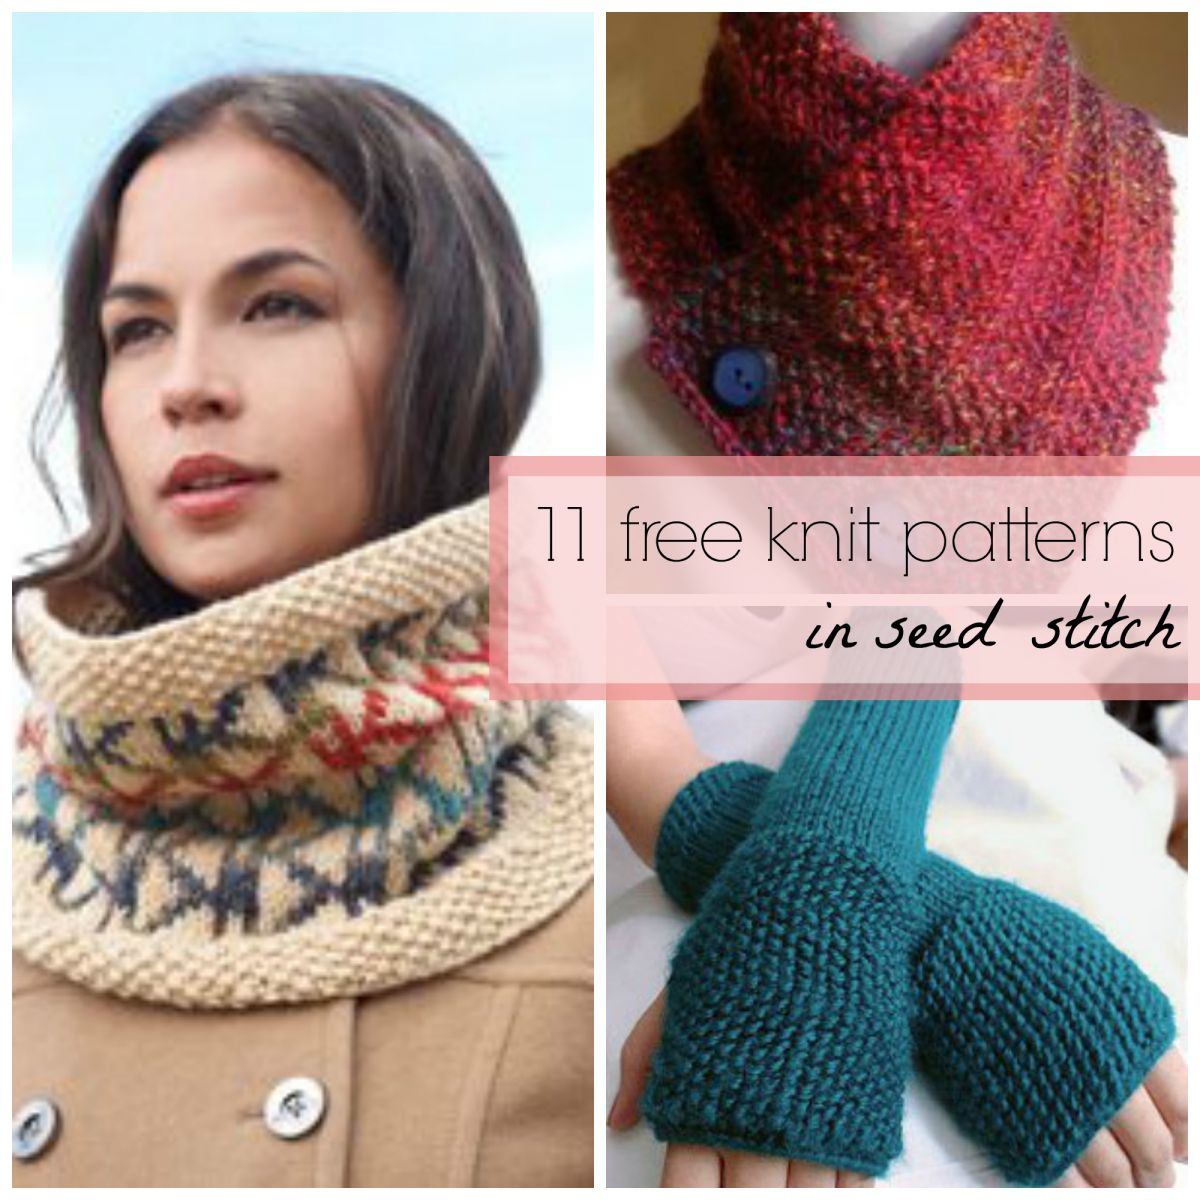 11 Free Knit Patterns in Seed Stitch